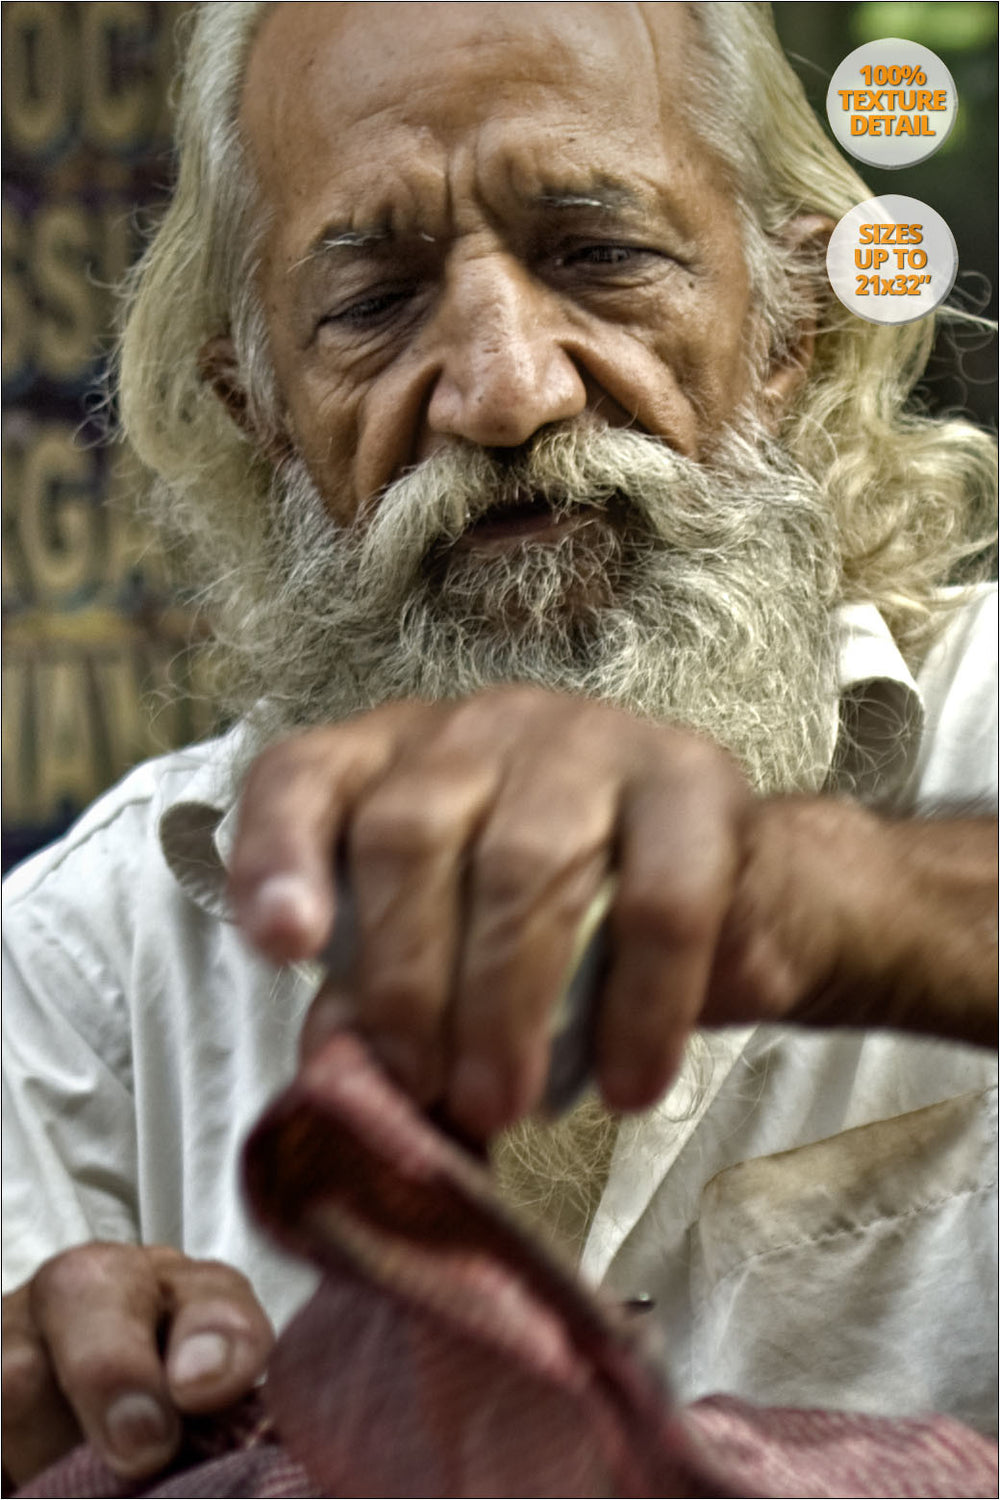 Portrait of sweets street seller, Chandni Chowk, Delhi. | 100% Magnification Detail View of the Print.